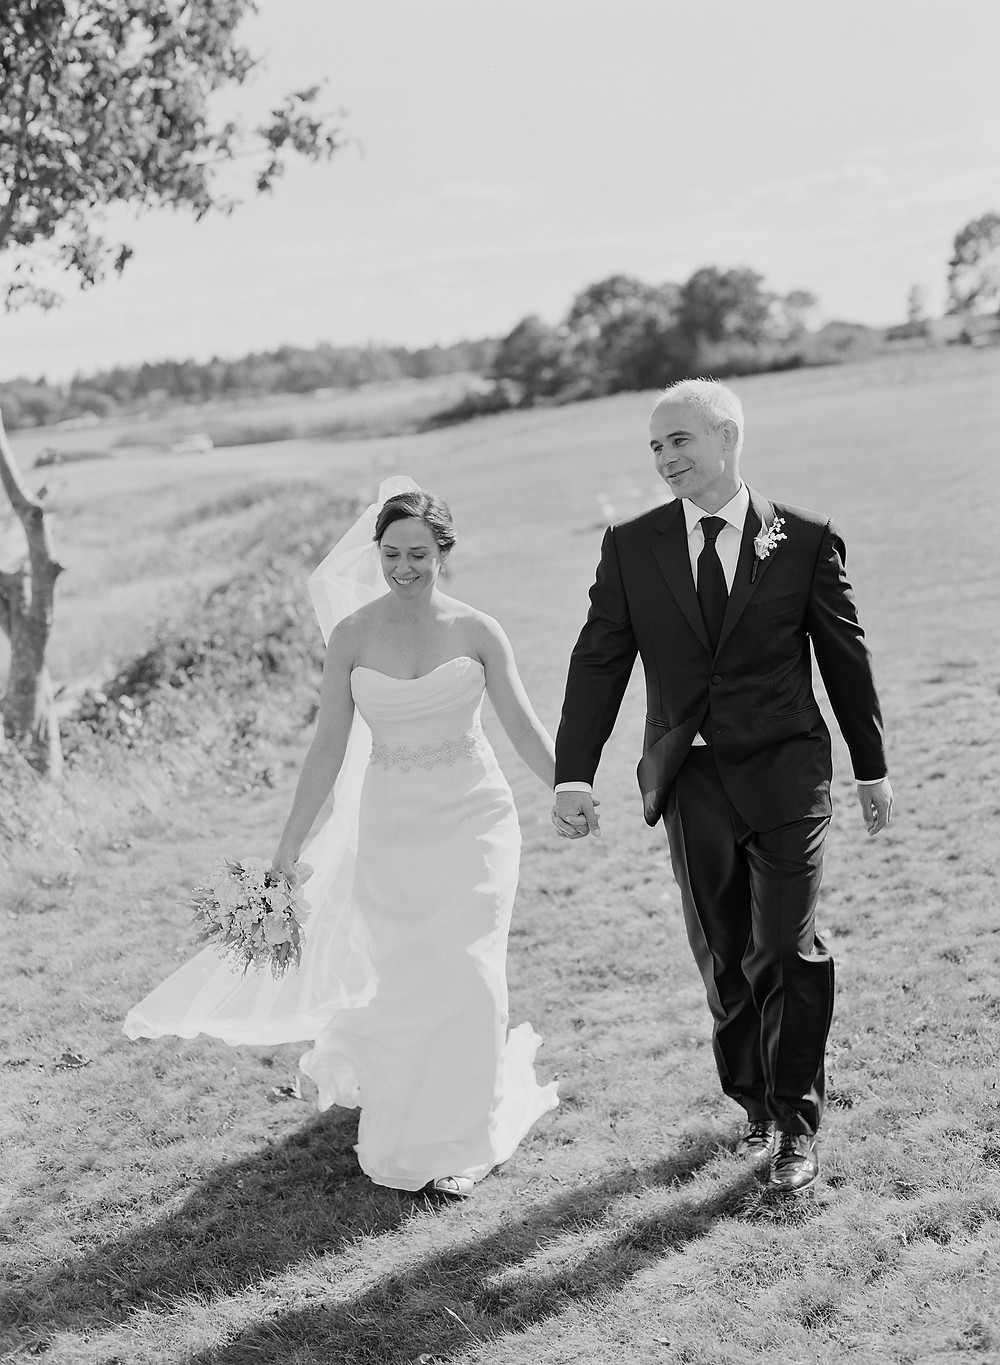 happy couple, bride and groom, outdoor wedding, lakeside wedding, lakefront wedding pictures, bride, groom, wedding dress, black and white wedding photo, smiling couple, couple holding hands